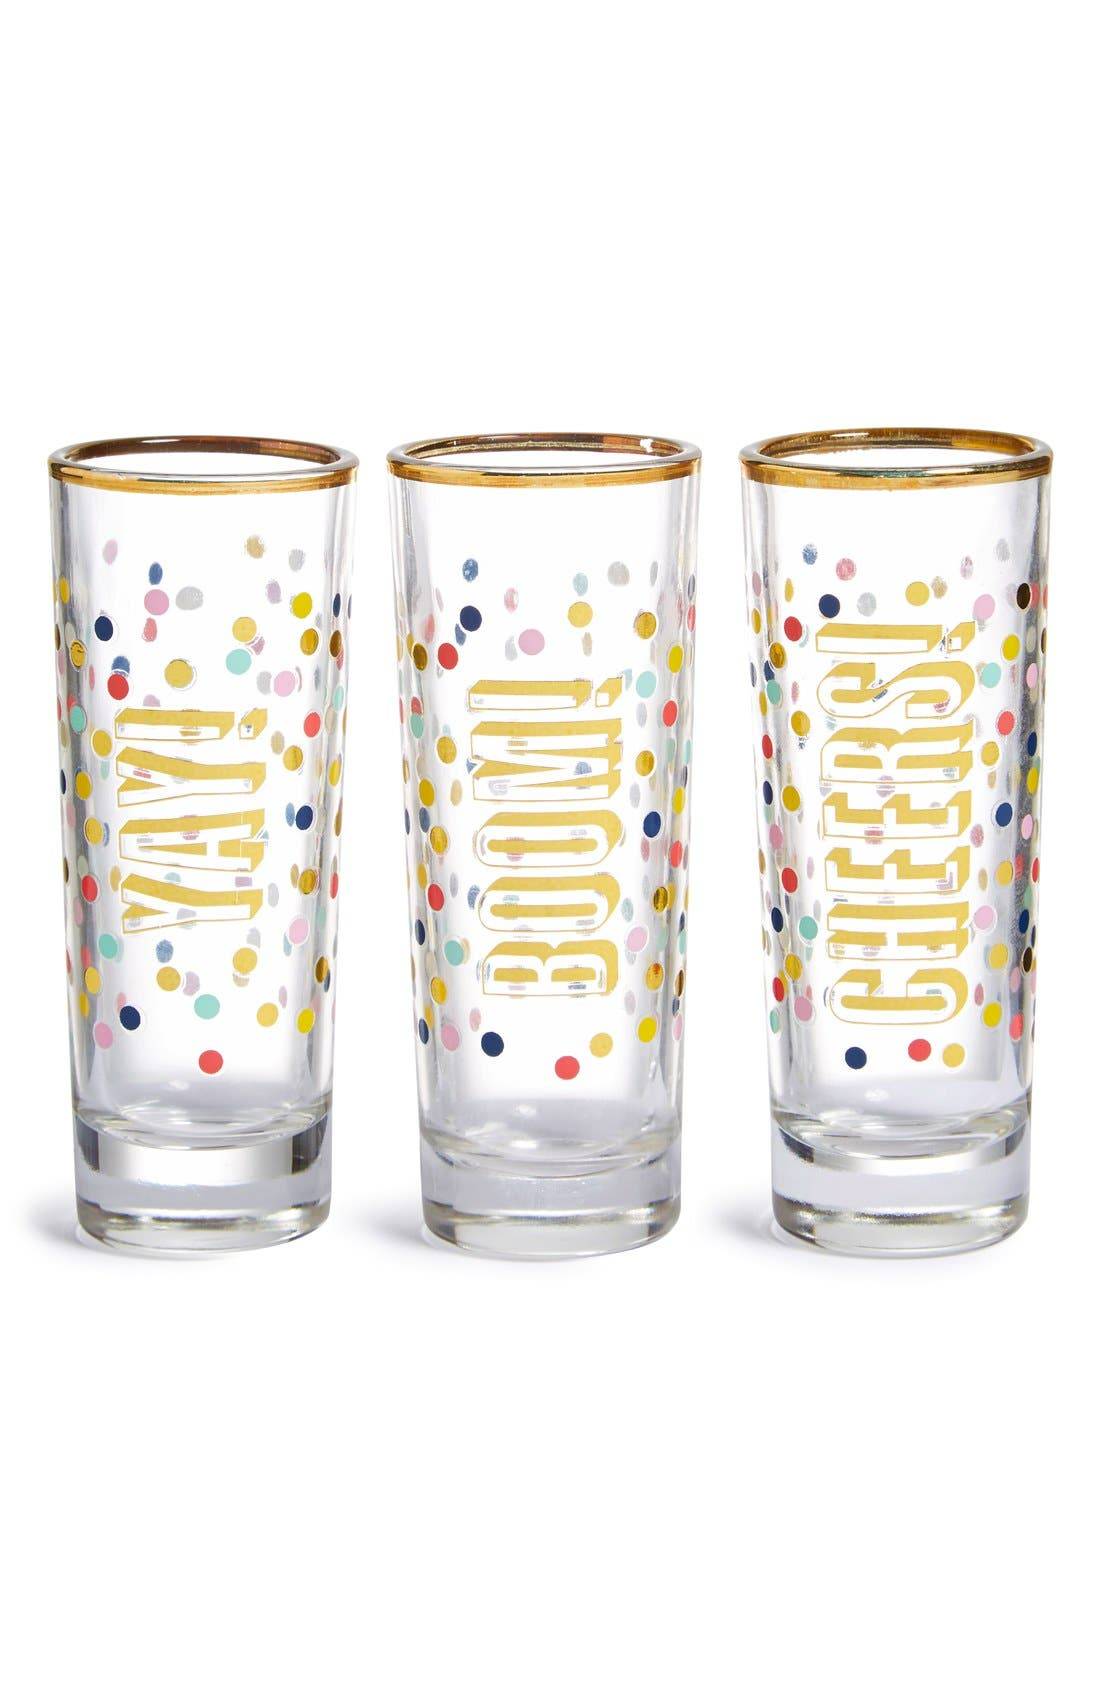 Alternate Image 1 Selected - Slant Collections 'Yay, Boom, Cheers' Shot Glasses (Set of 3)